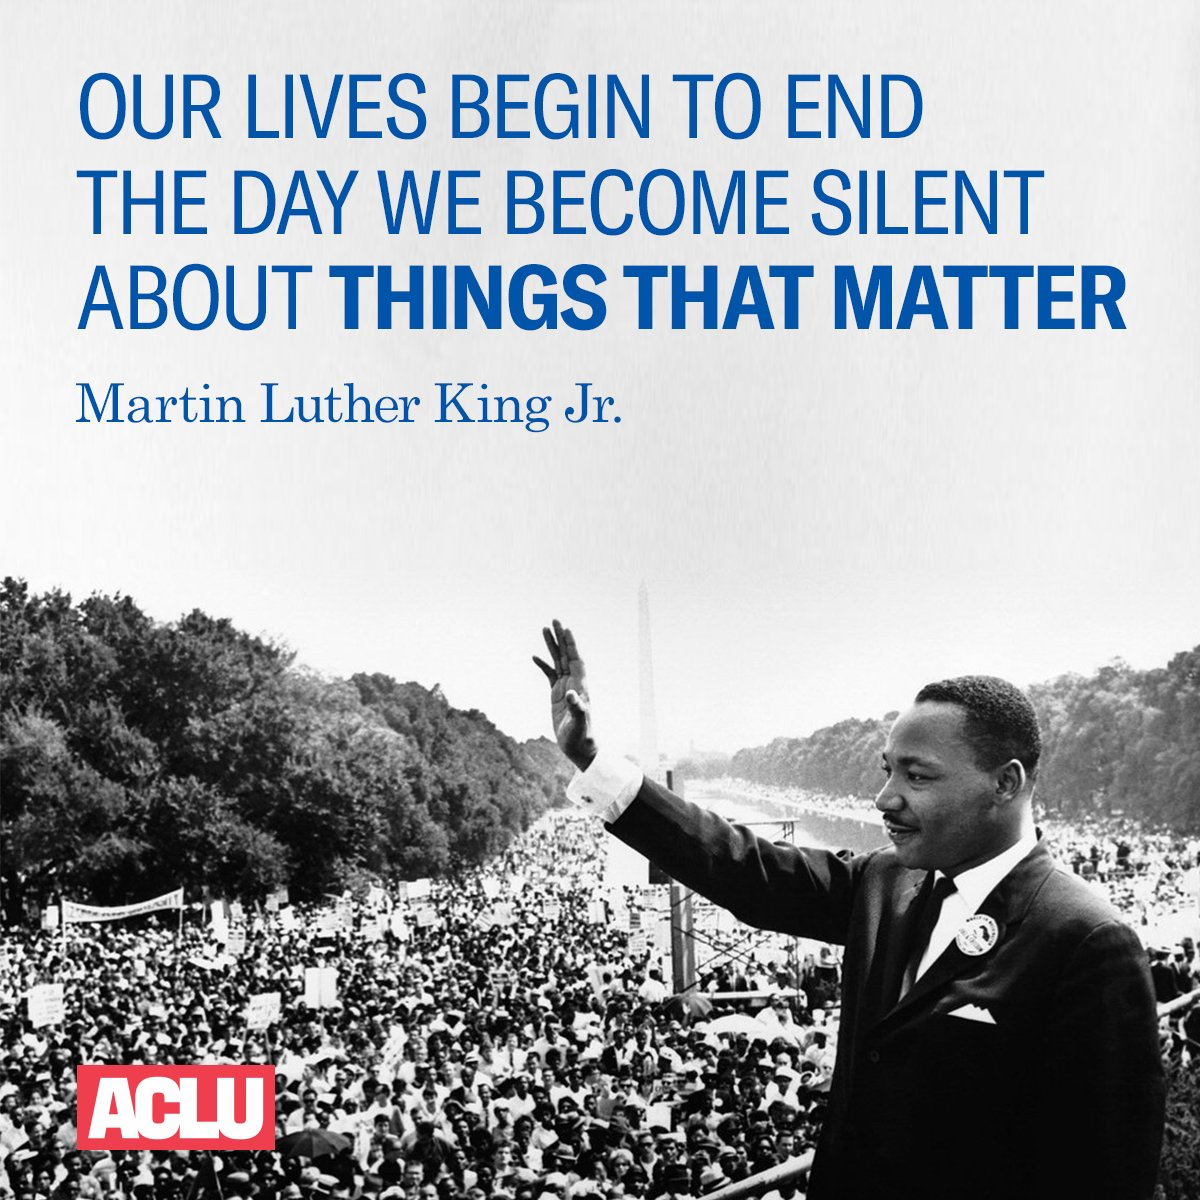 We honor the life and legacy of Martin Luther King Jr. #MLKDay https://t.co/9TCmq3x8Ww